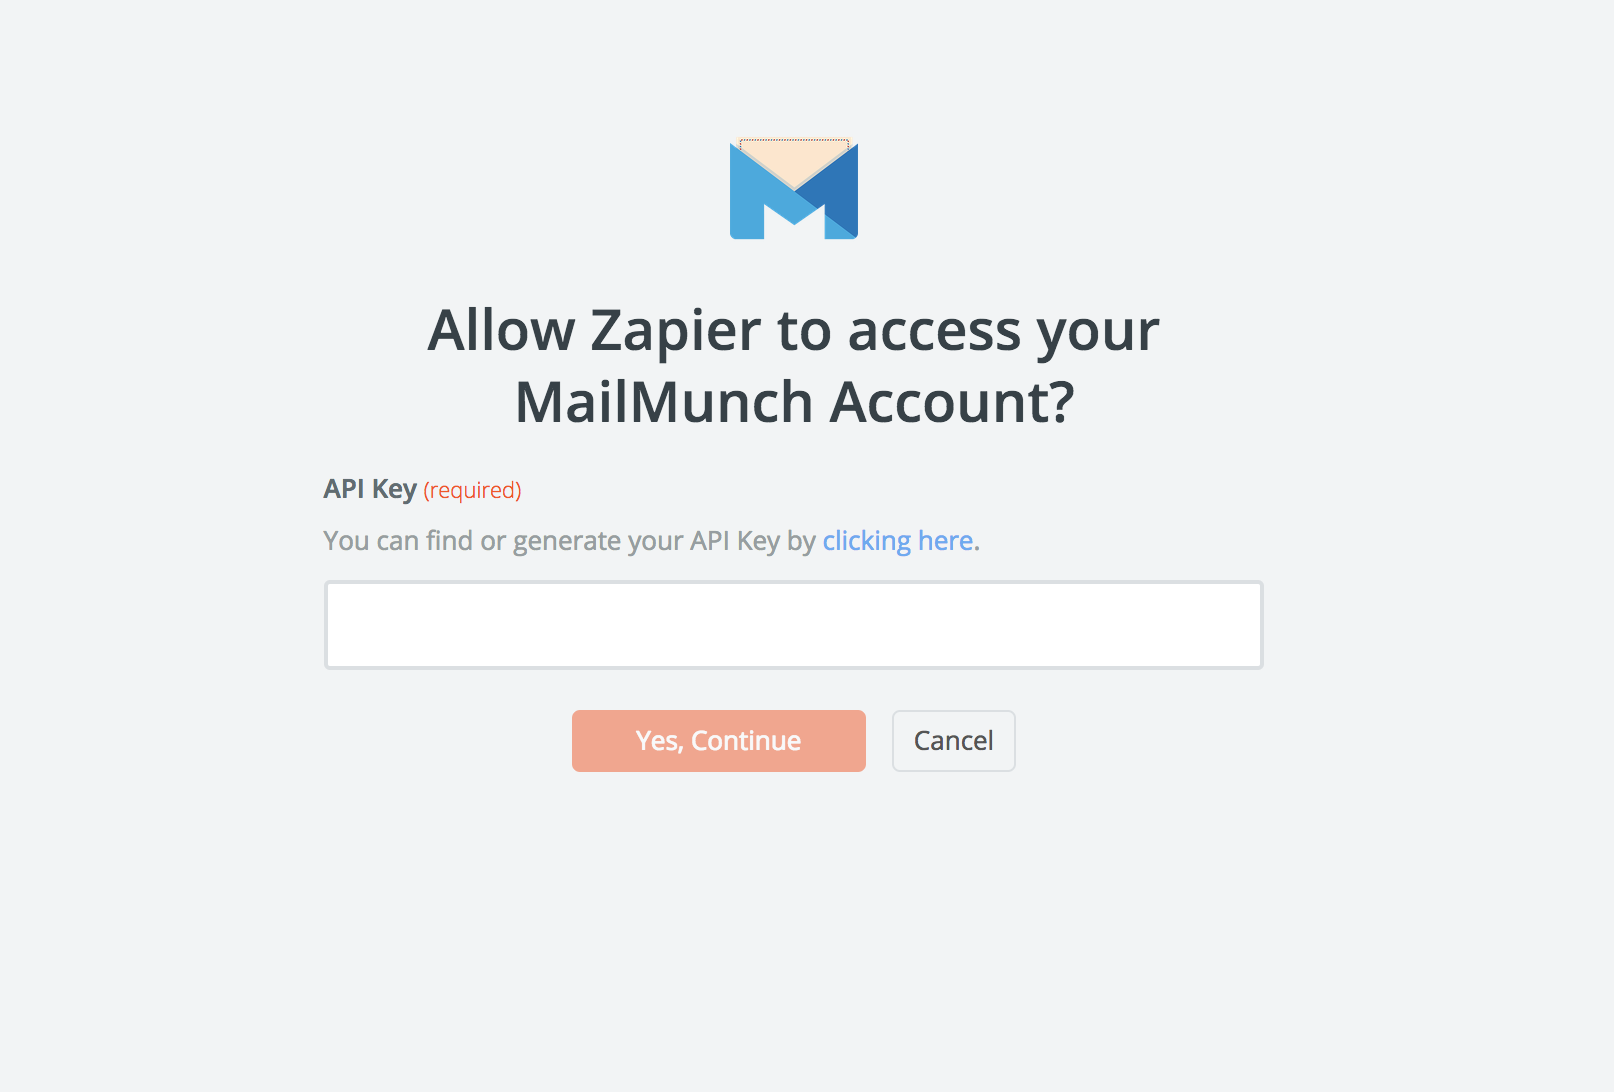 MailMunch API Key